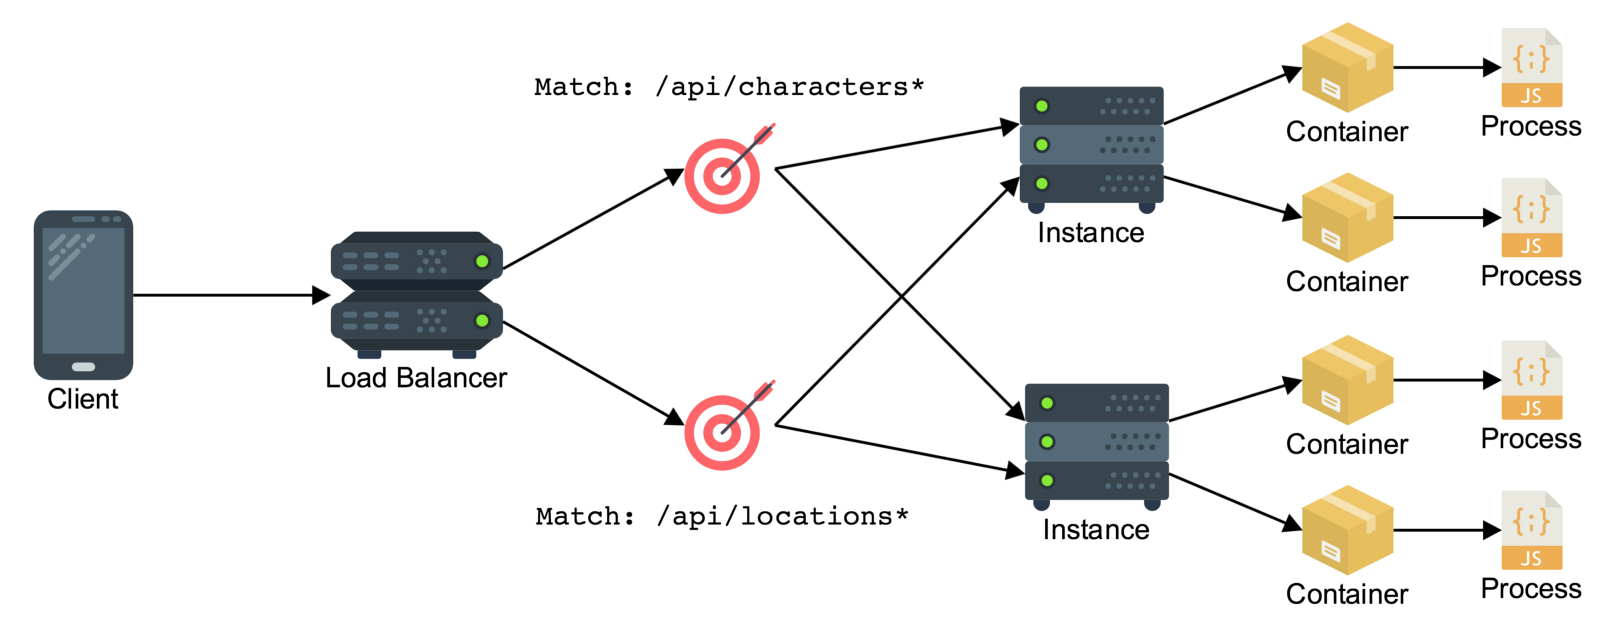 Granular Application Architecture Patterns Containers On Aws Medium